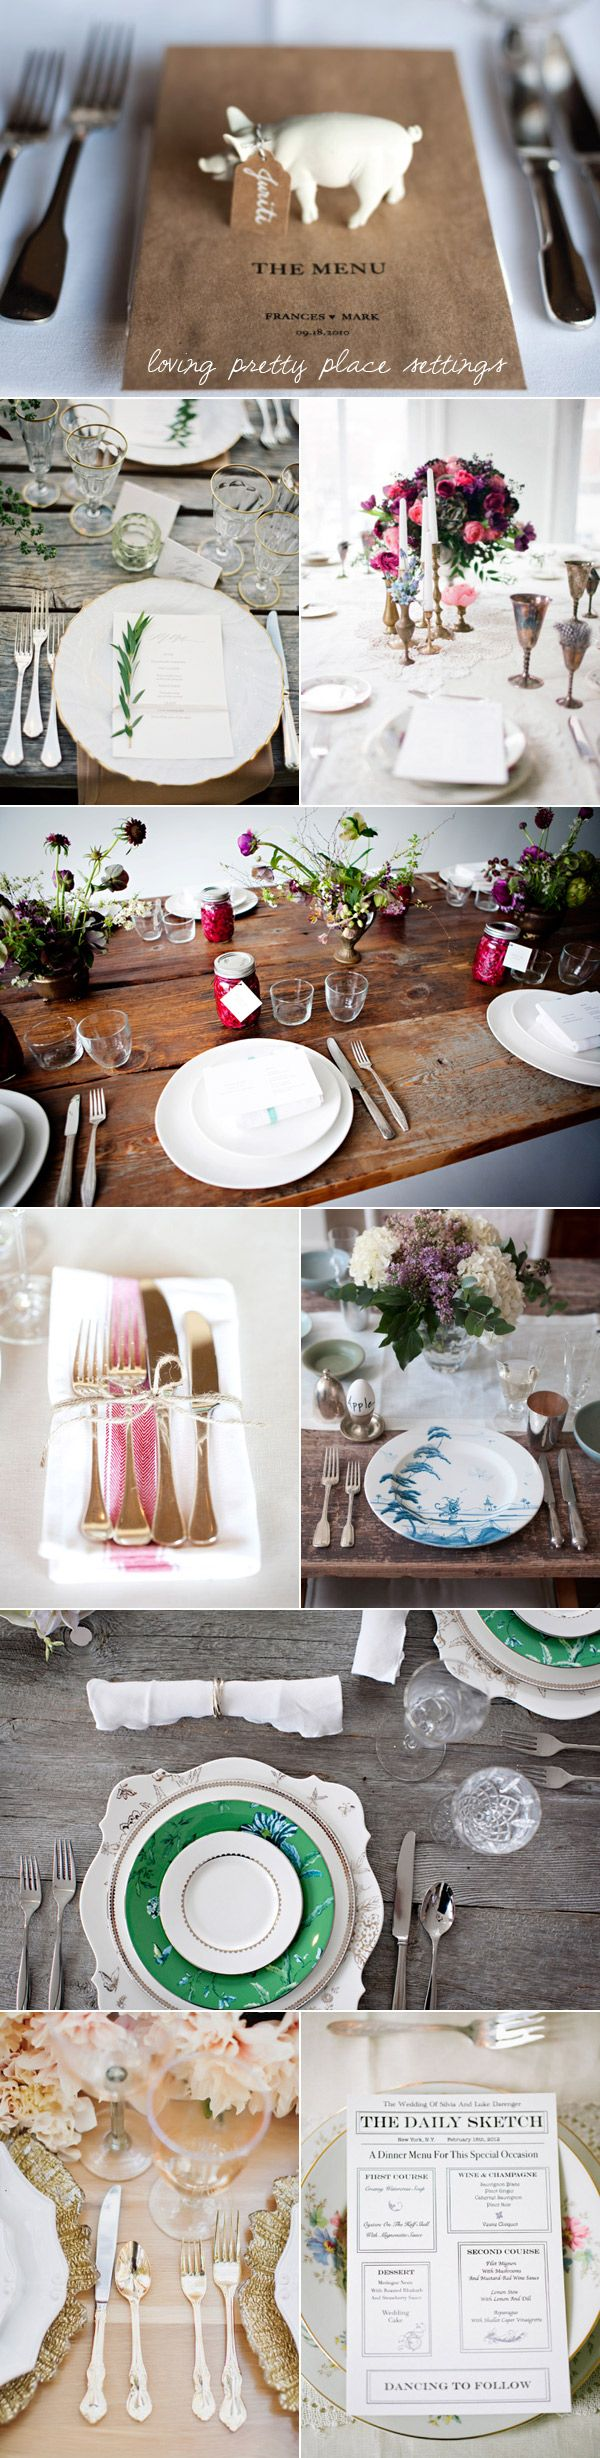 Beautiful place settings, wedding and otherwise